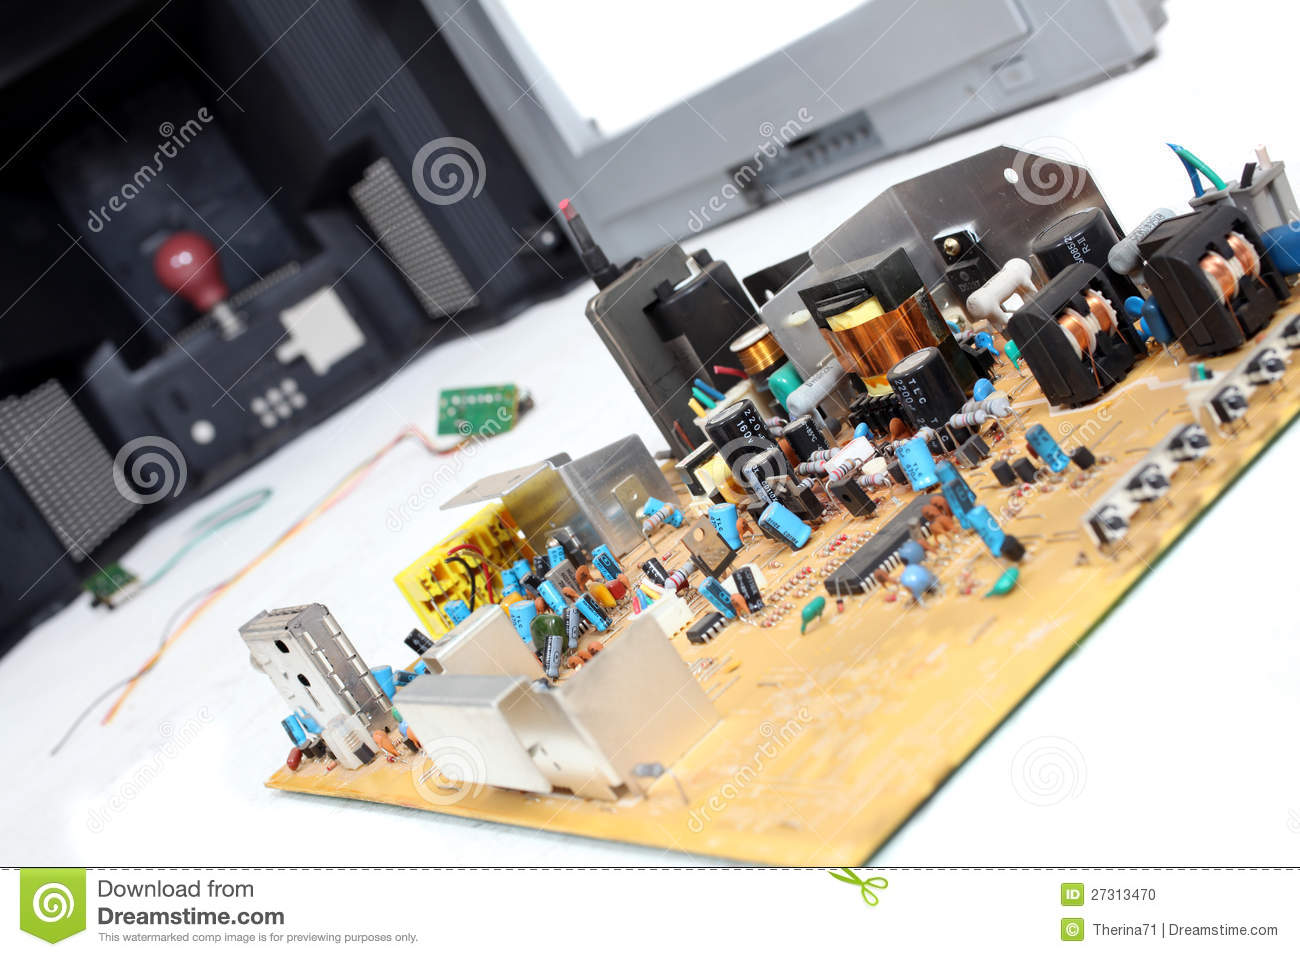 http://thumbs.dreamstime.com/z/spare-parts-27313470.jpg